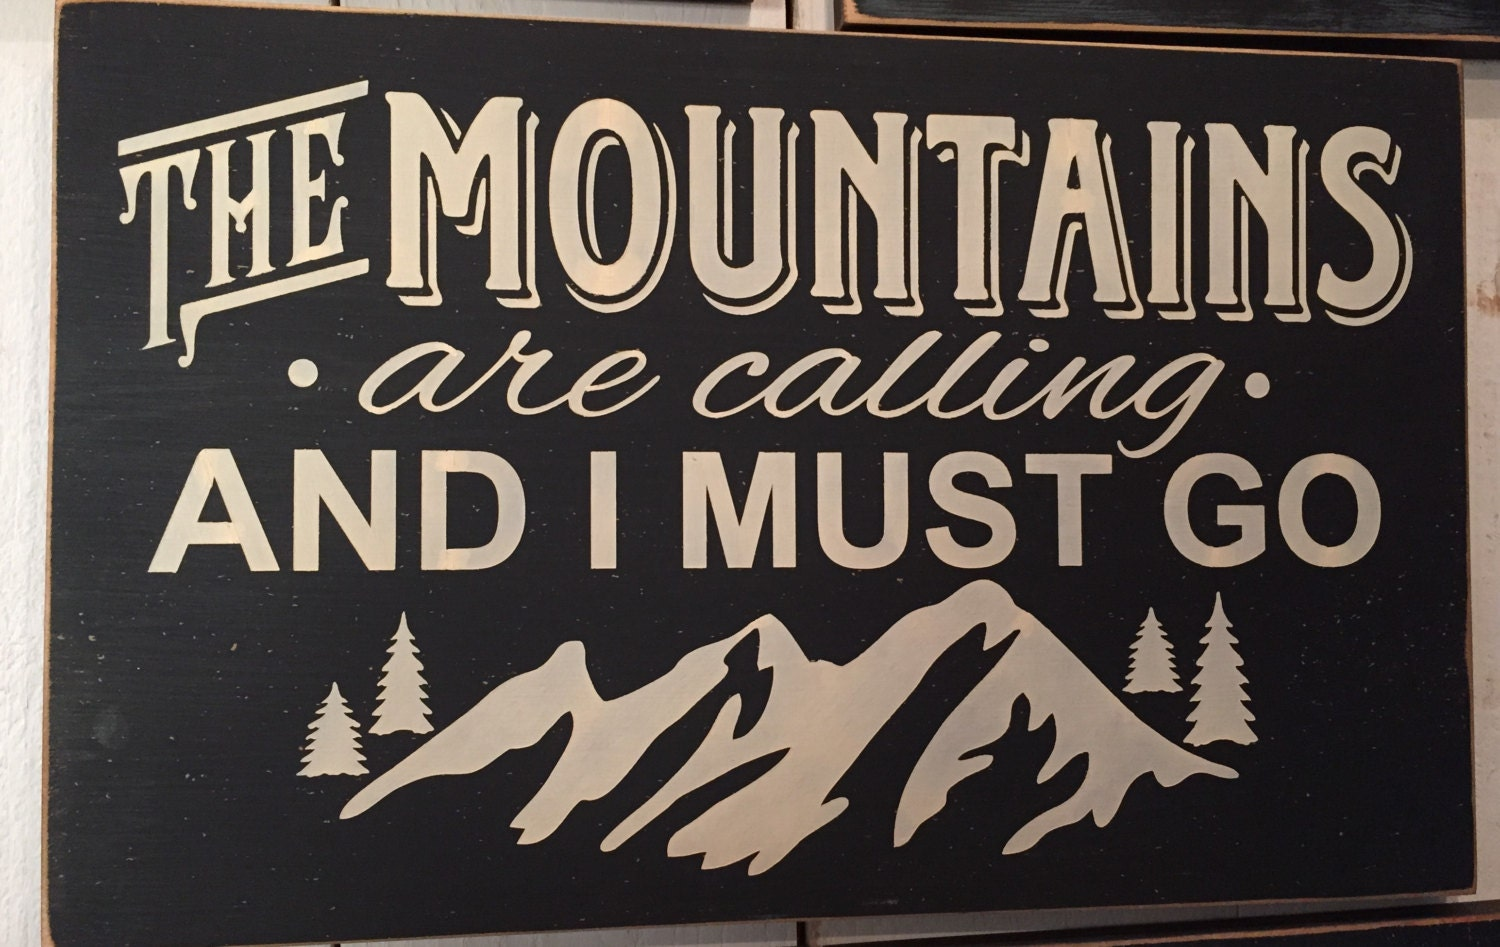 The mountains are calling and i must go john by for The mountains are calling and i must go metal sign